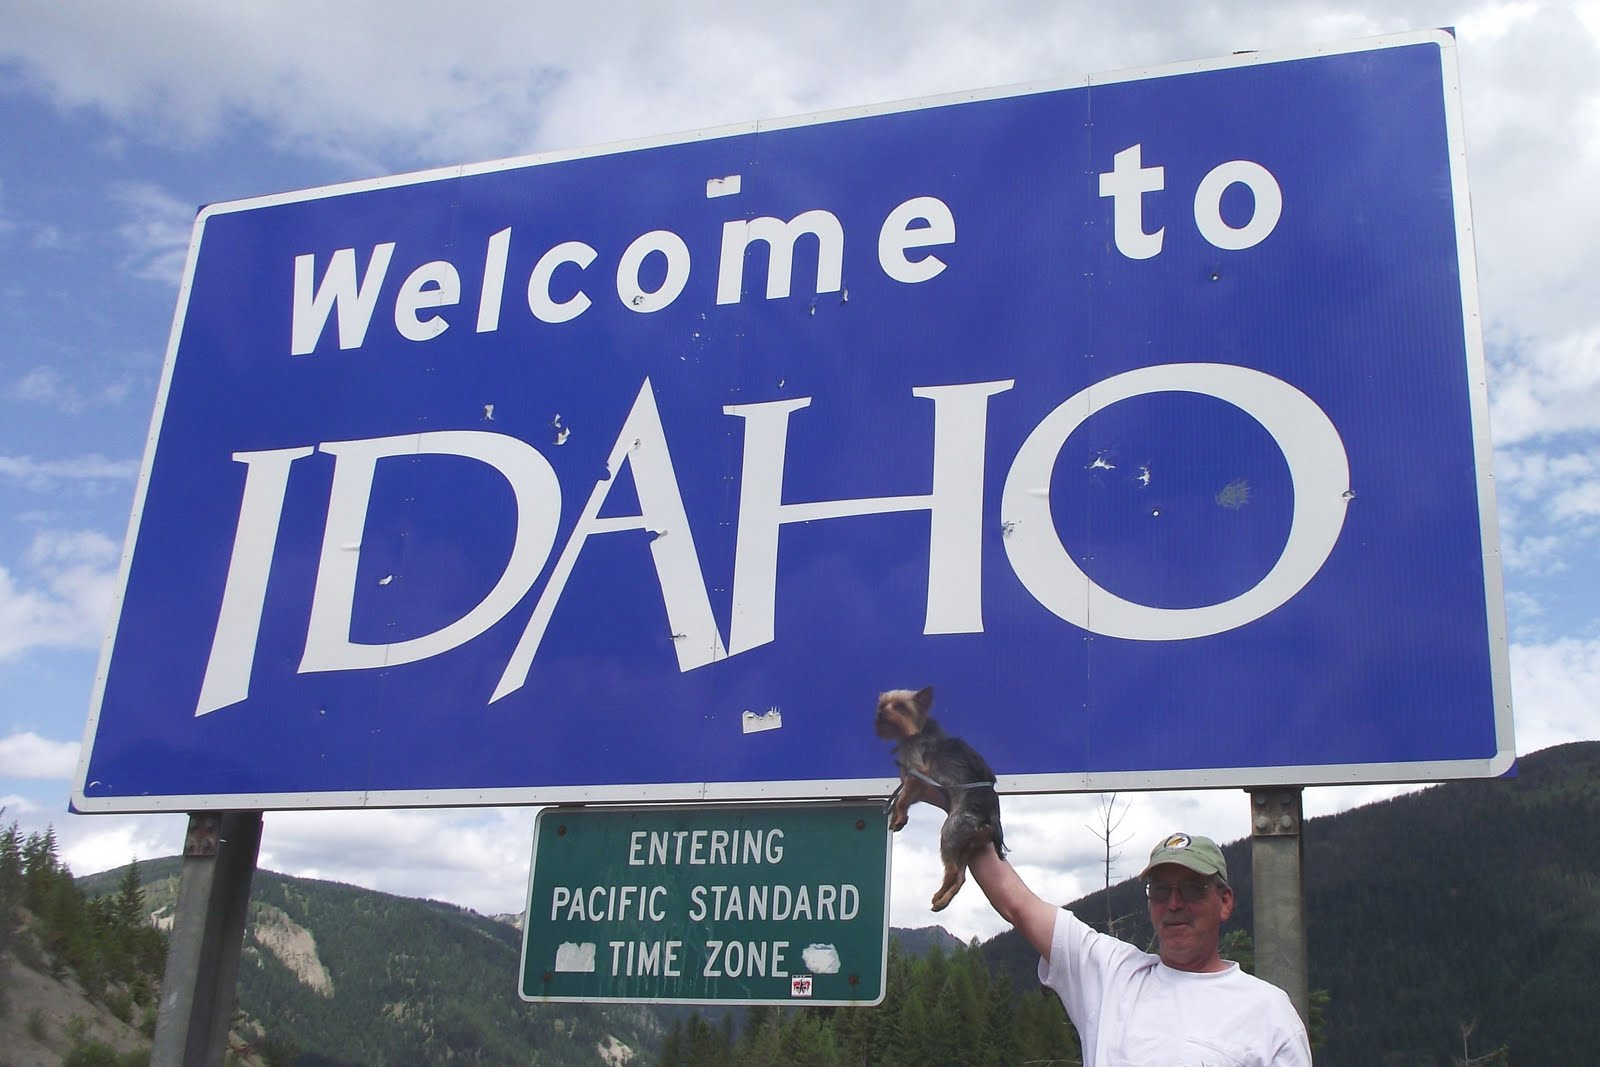 Idaho festivals 2016 ID events road sign